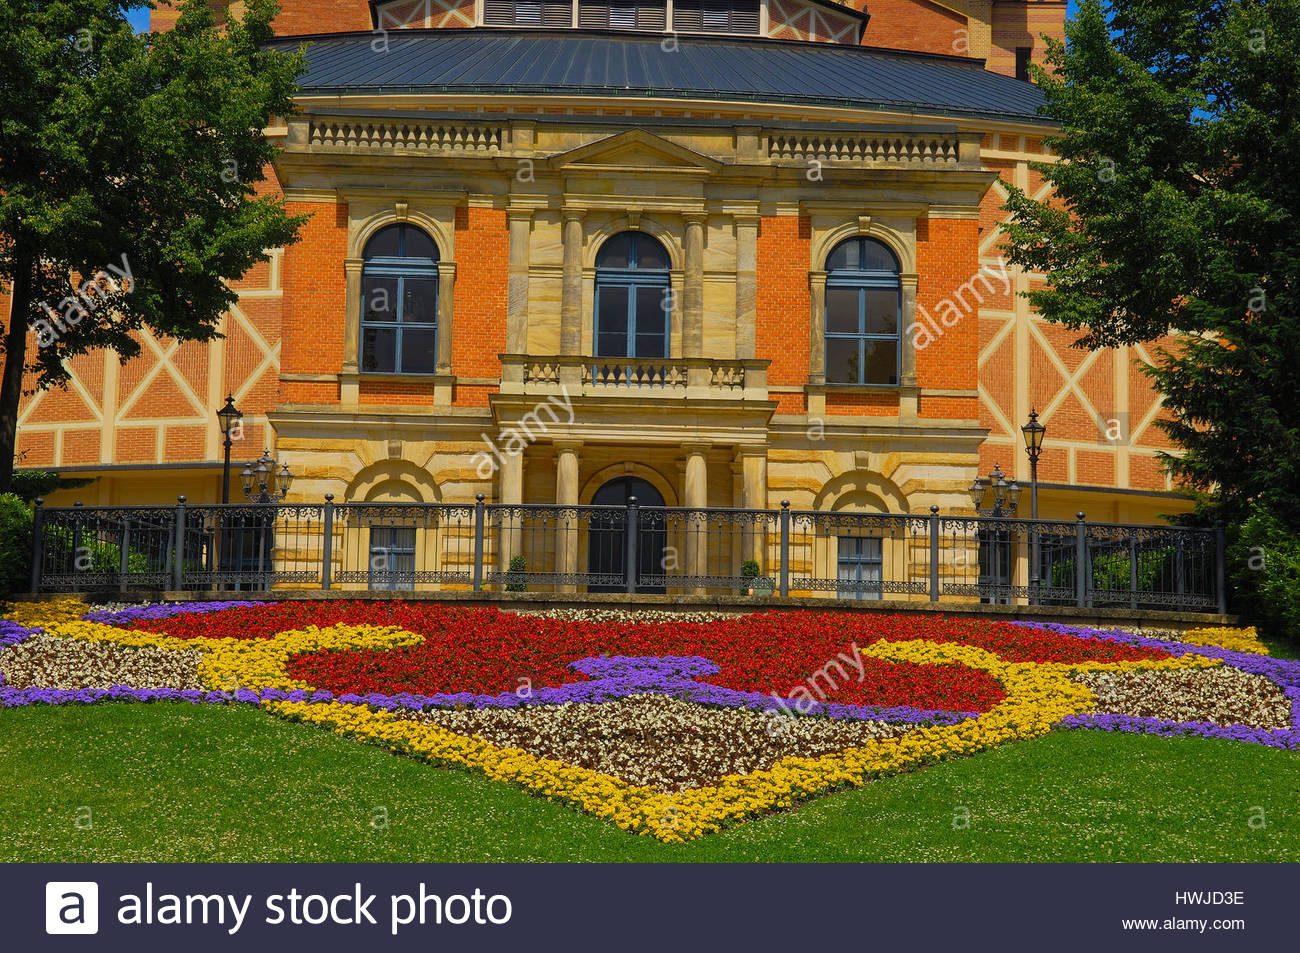 Römermuseum Kastell Boiotro Franconia and the German Danube, The Richard Wagner Festspielhaus In Bayreuth Stock Photos & The ...